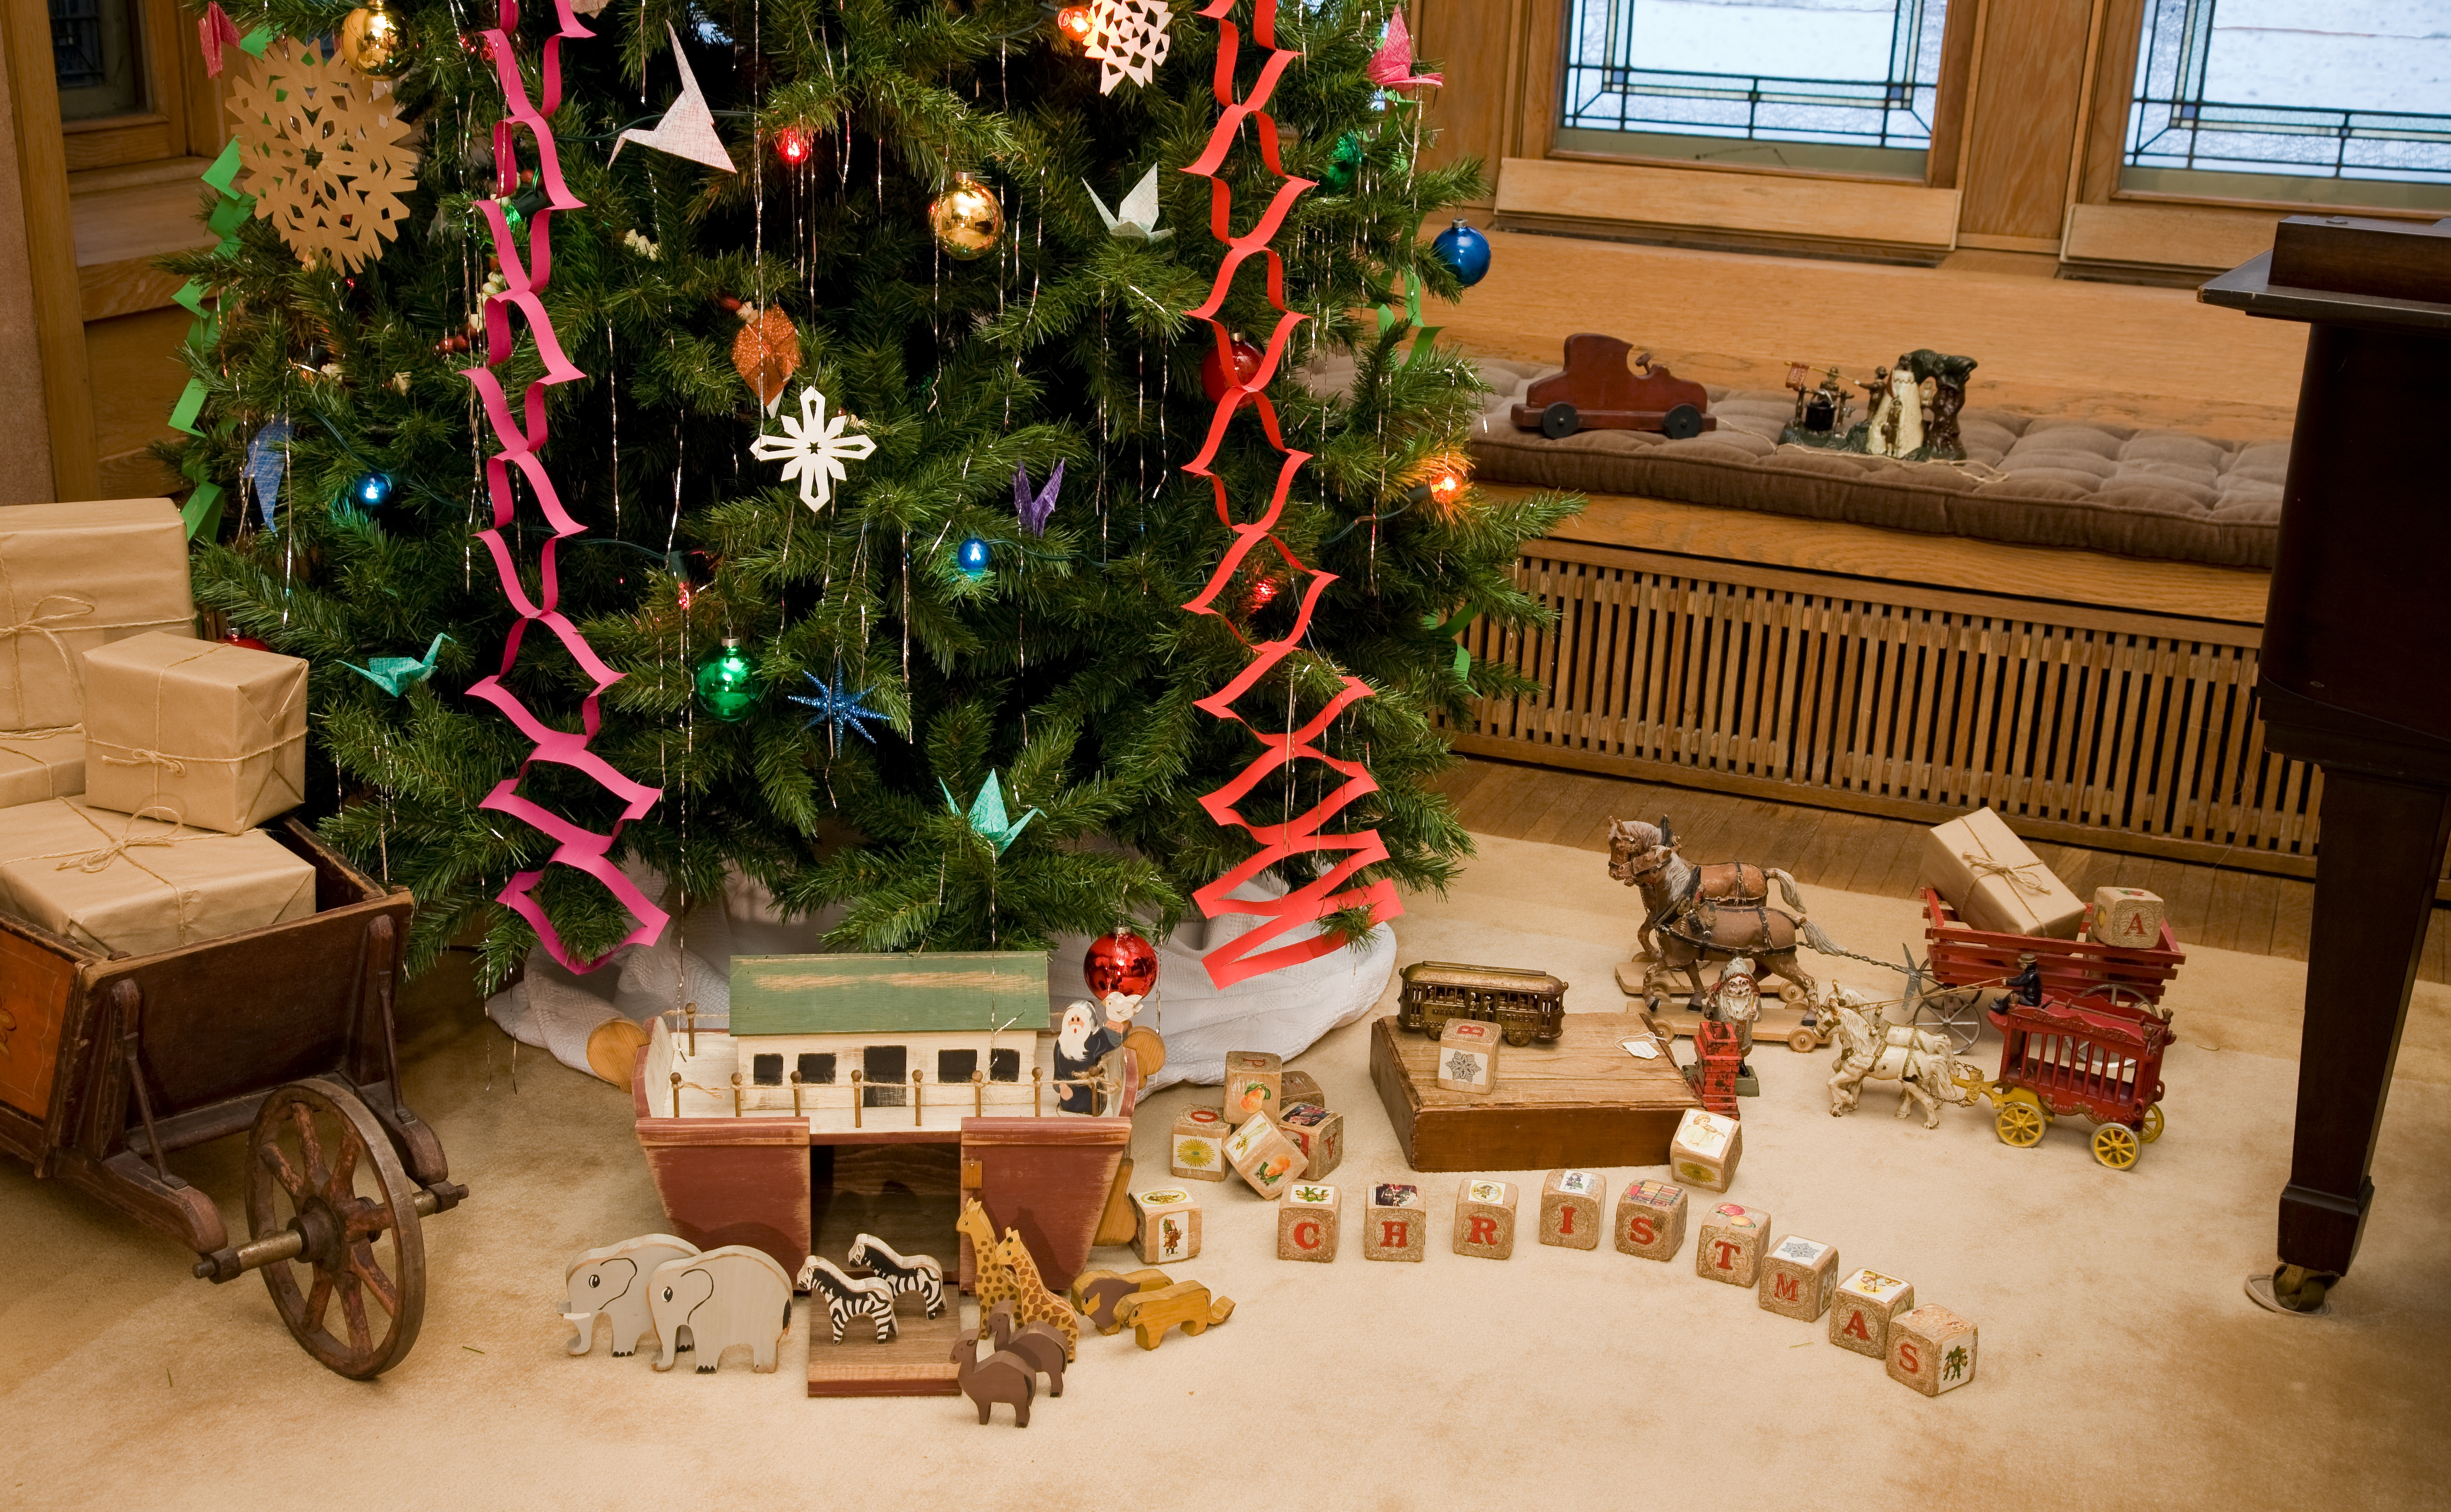 Purcell-Cutts House, Holiday Traditions 2007